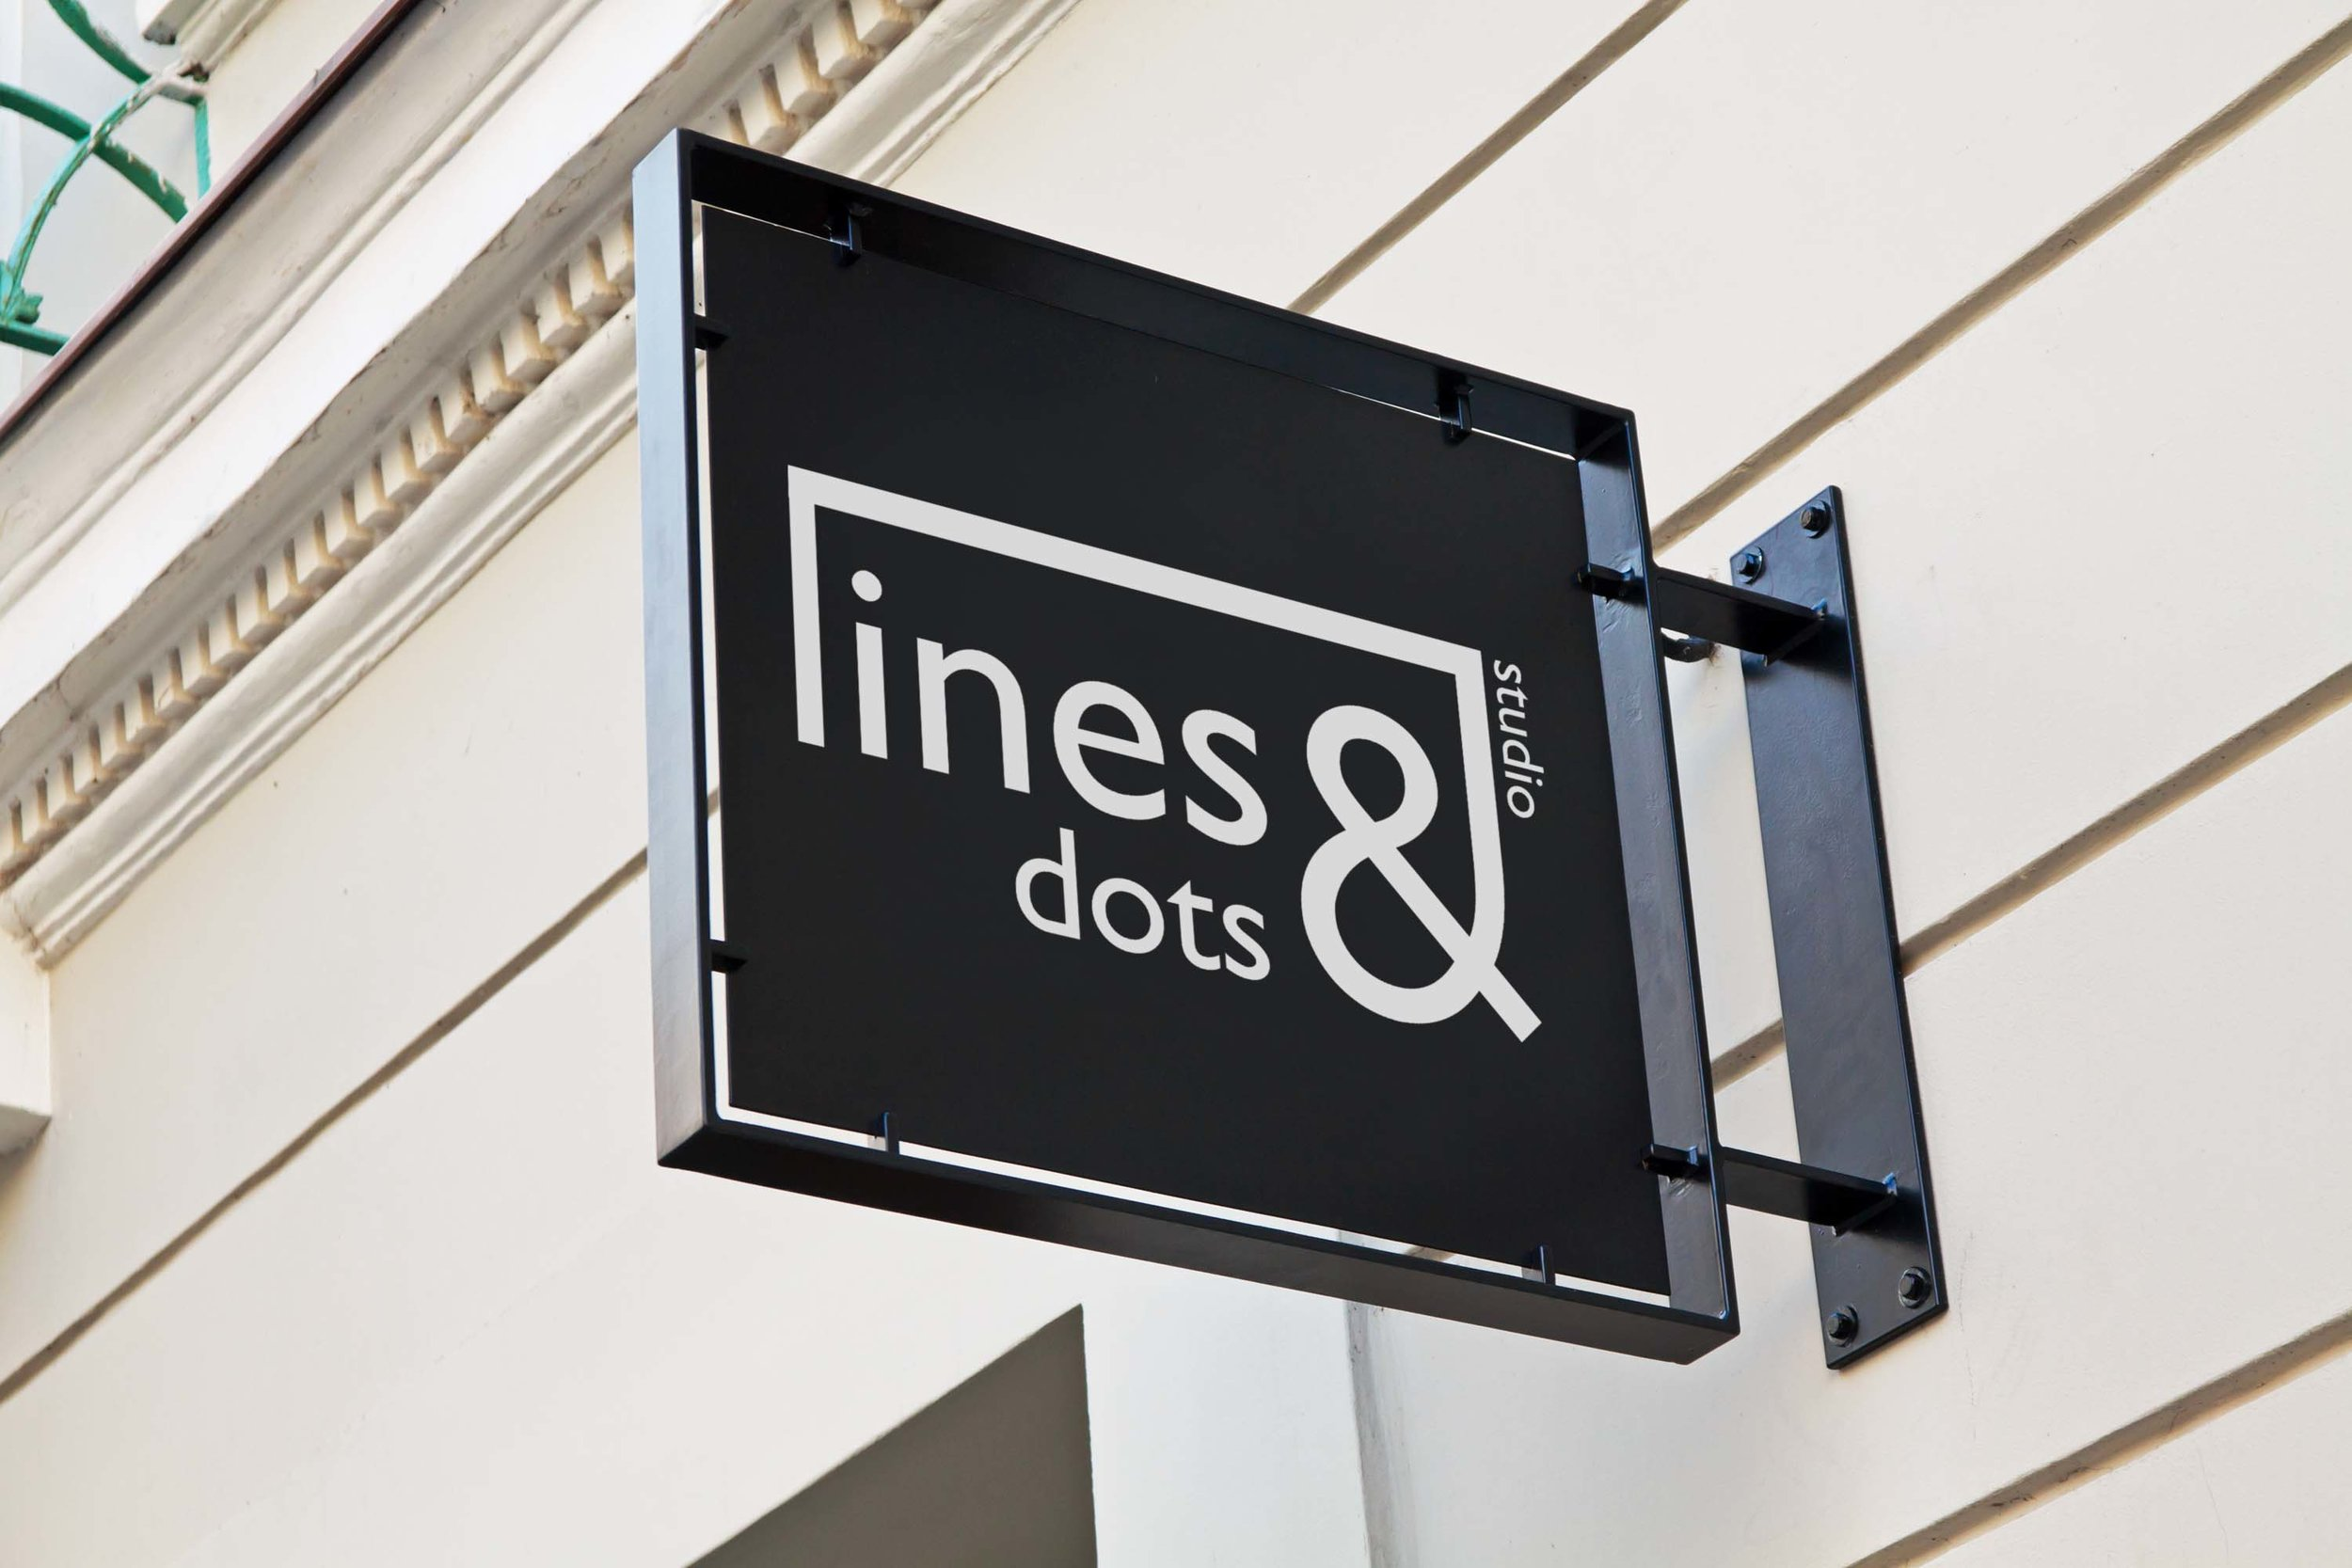 Lines and dots studio